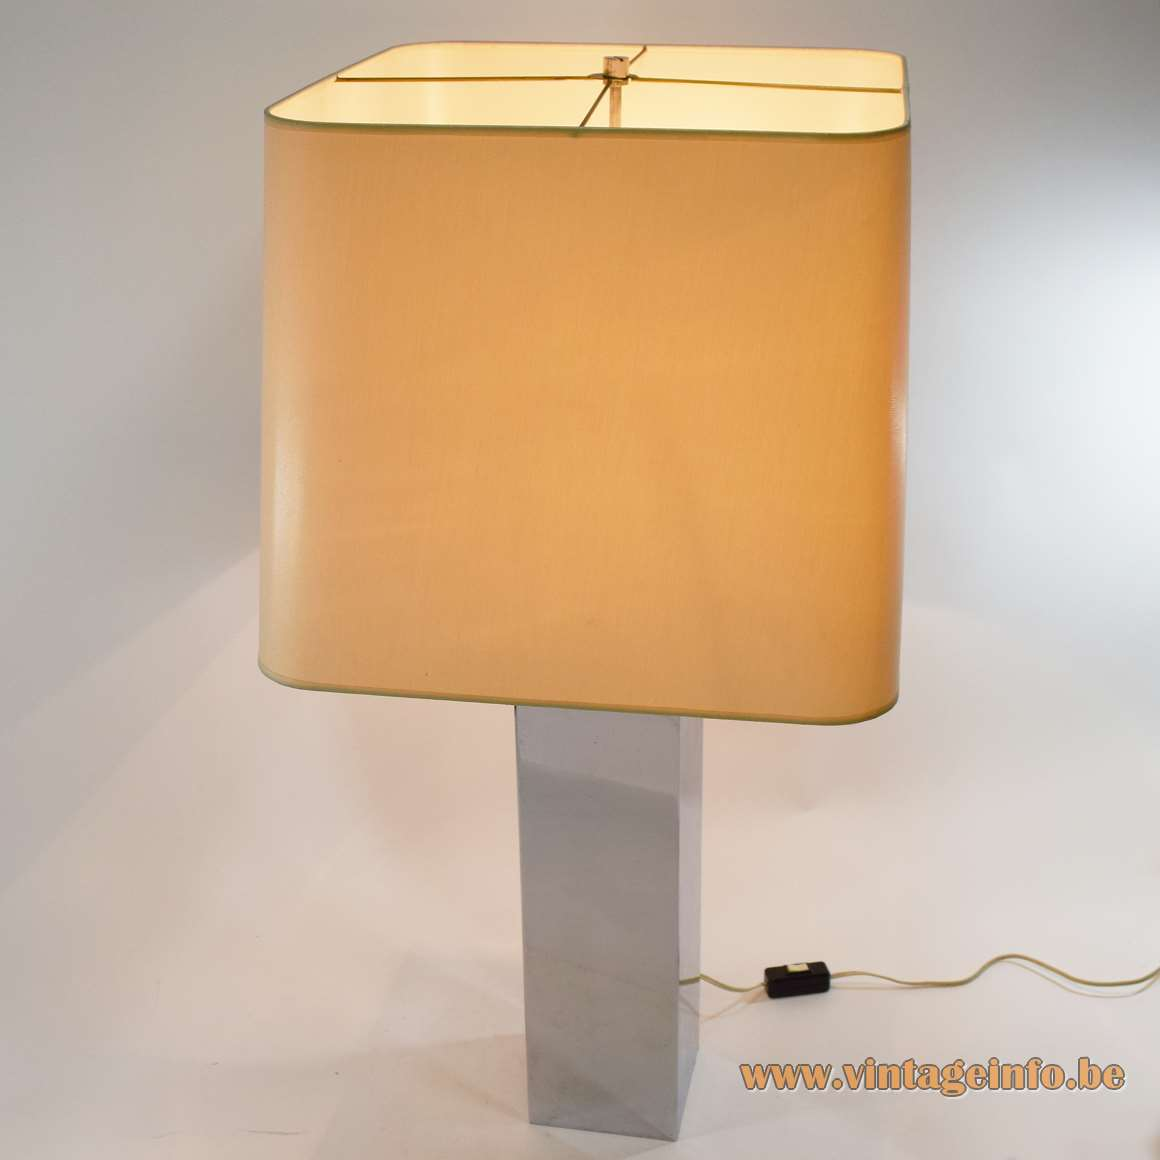 Chrome rectangular table lamp geometric rectangular beam square fabric lampshade Belgo Chrom 1970s 1980s Belgium